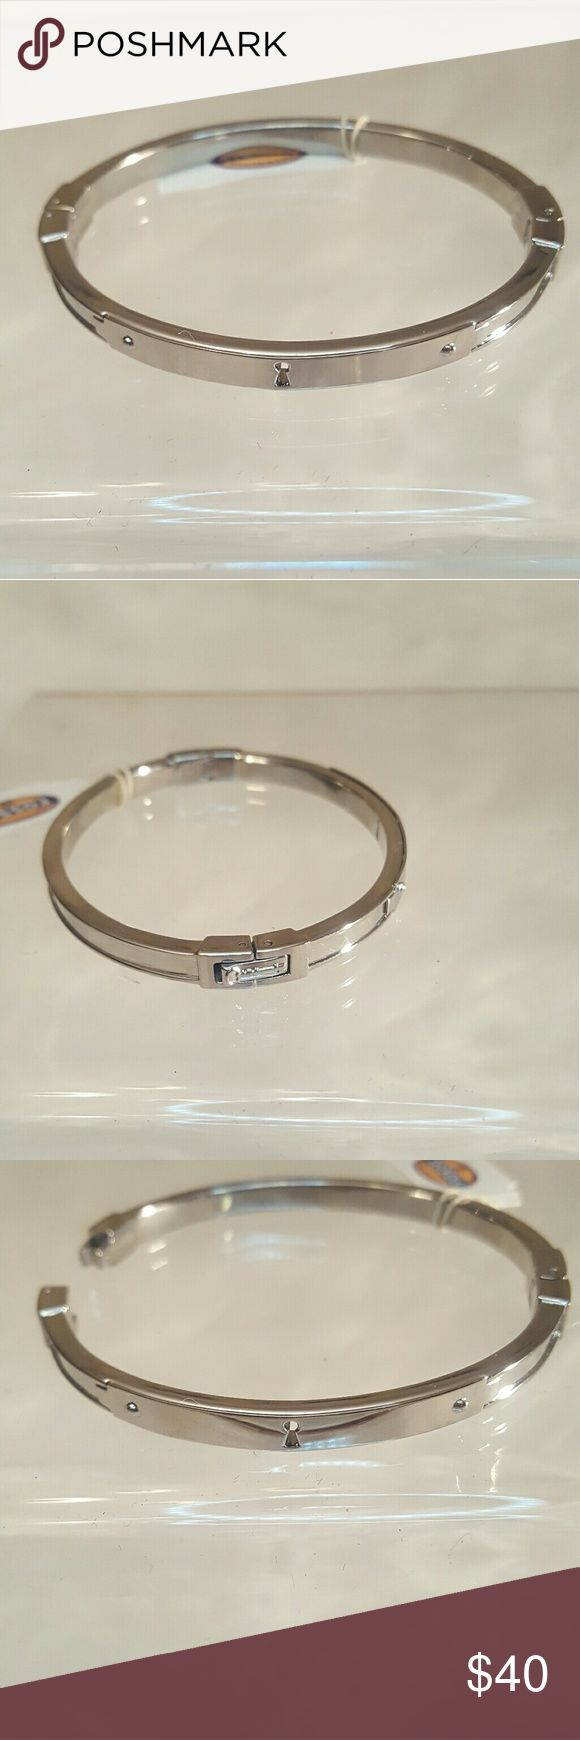 """🎁 Fossil Silver """"Lock"""" Bangle Bracelet Fossil Bangle Bracelet has the iconic """"lock"""" detail and two rivets on the front.  Bracelet has push clasp opening and hindge. Very sturdy closure.  Silver color, made of stainless steel. ▫ New with tags ▫ Made in China  Stack with the other fossil bangle listed for a complete look!  🎁 Gift? Will come in gift box. Free gift Bracelet has push clasp opening and hindge. Very sturdy closure. if you ask! (Will take tags off for gift wrap) Fossil Jewelry…"""